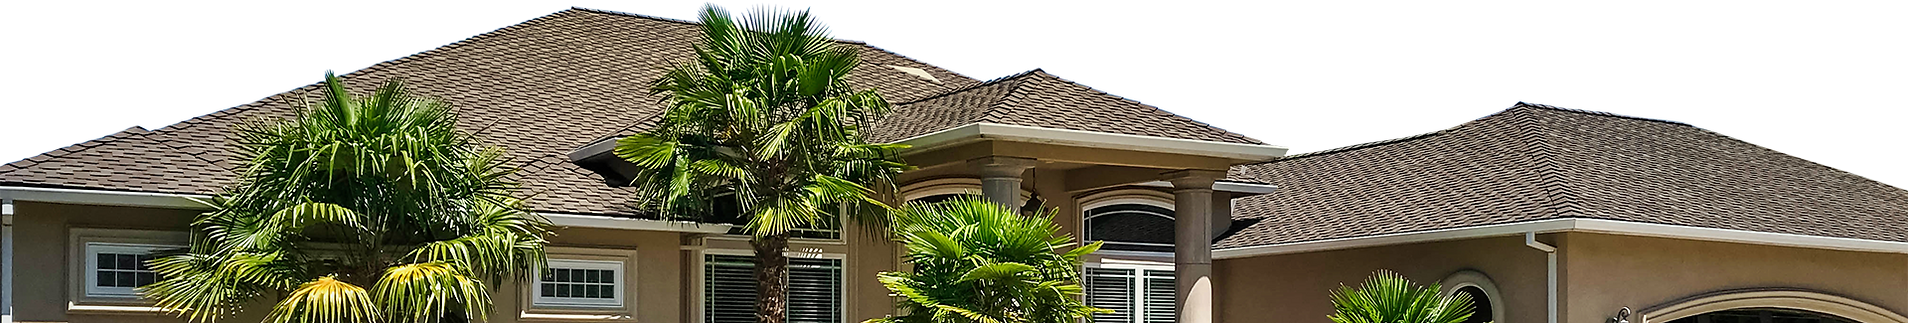 Roof Care Page Main Image 2.png